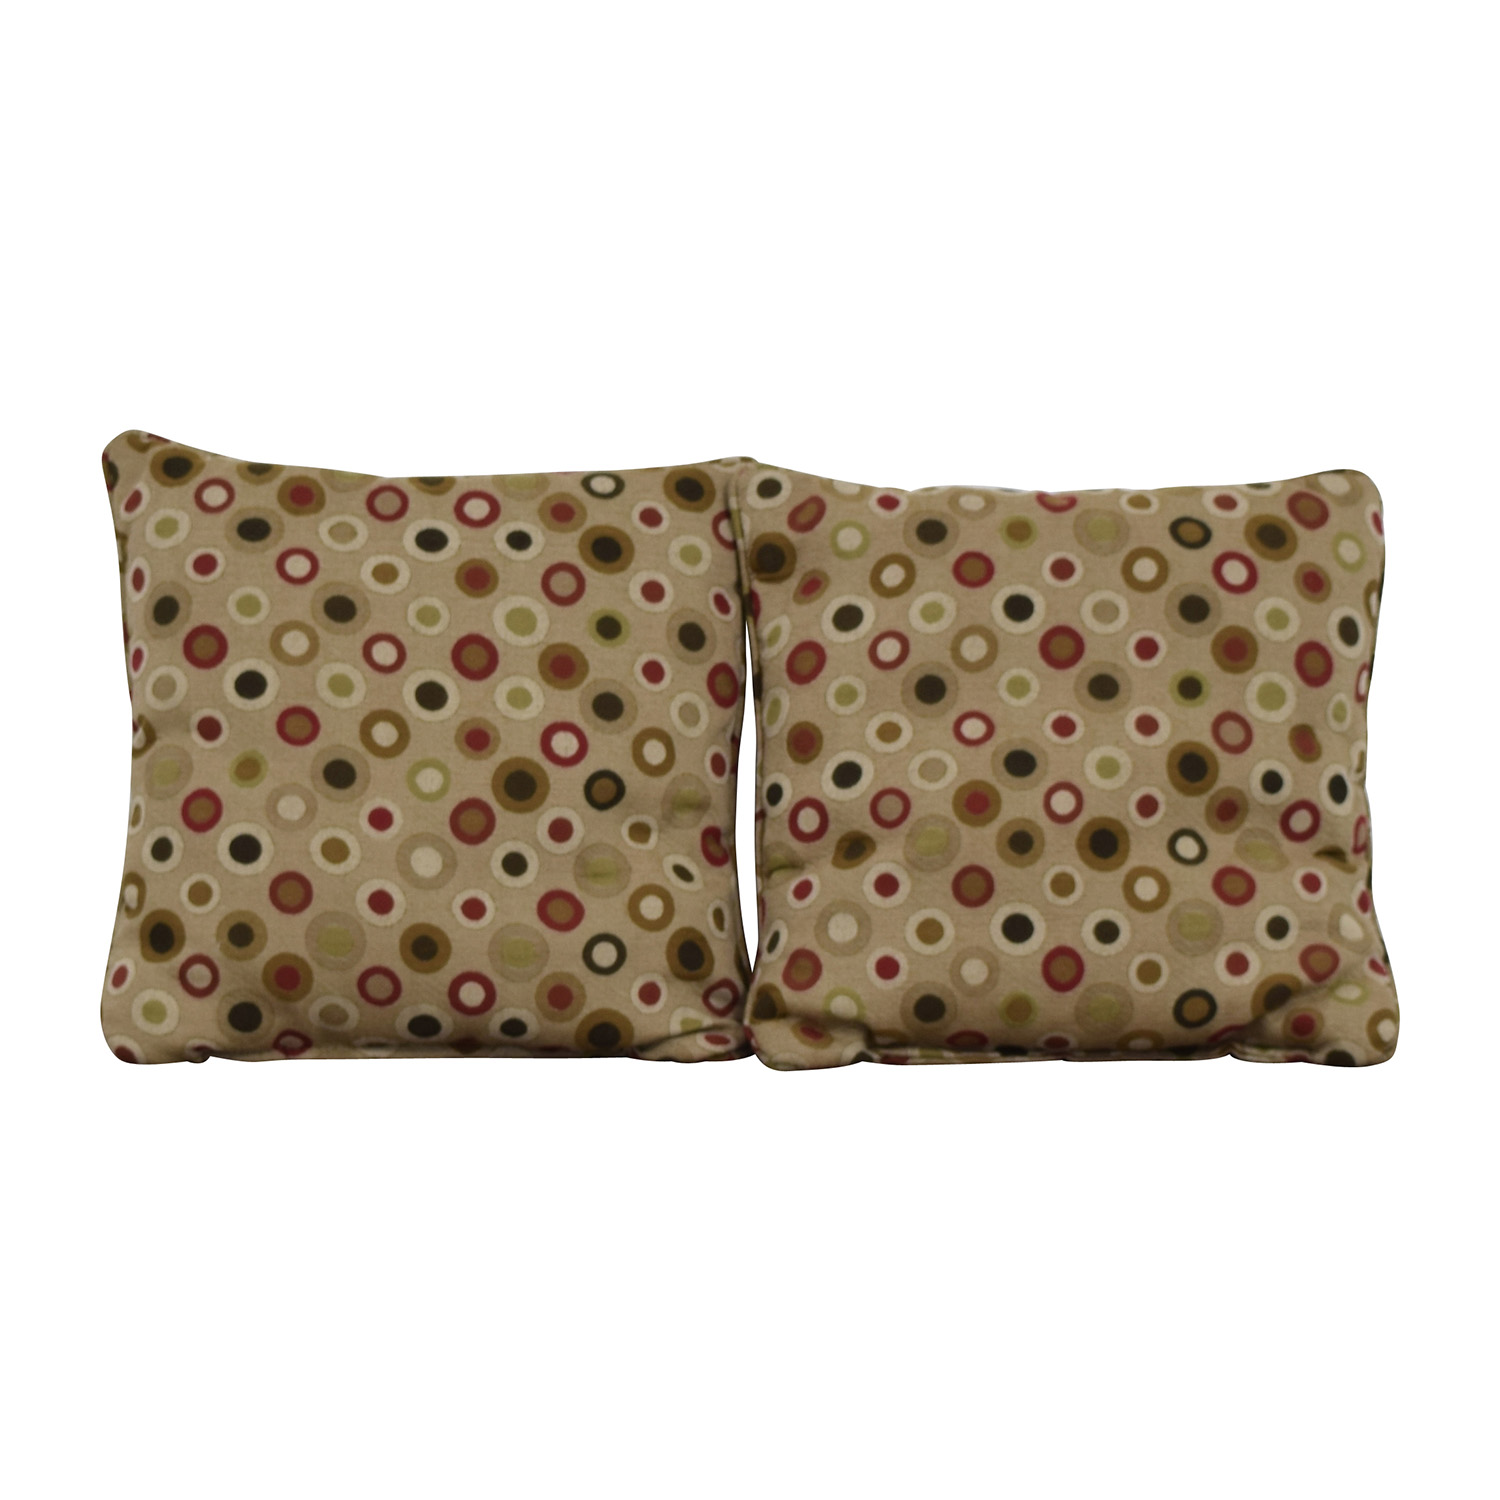 Tan with Multi-Colored Circles Toss Pillows price